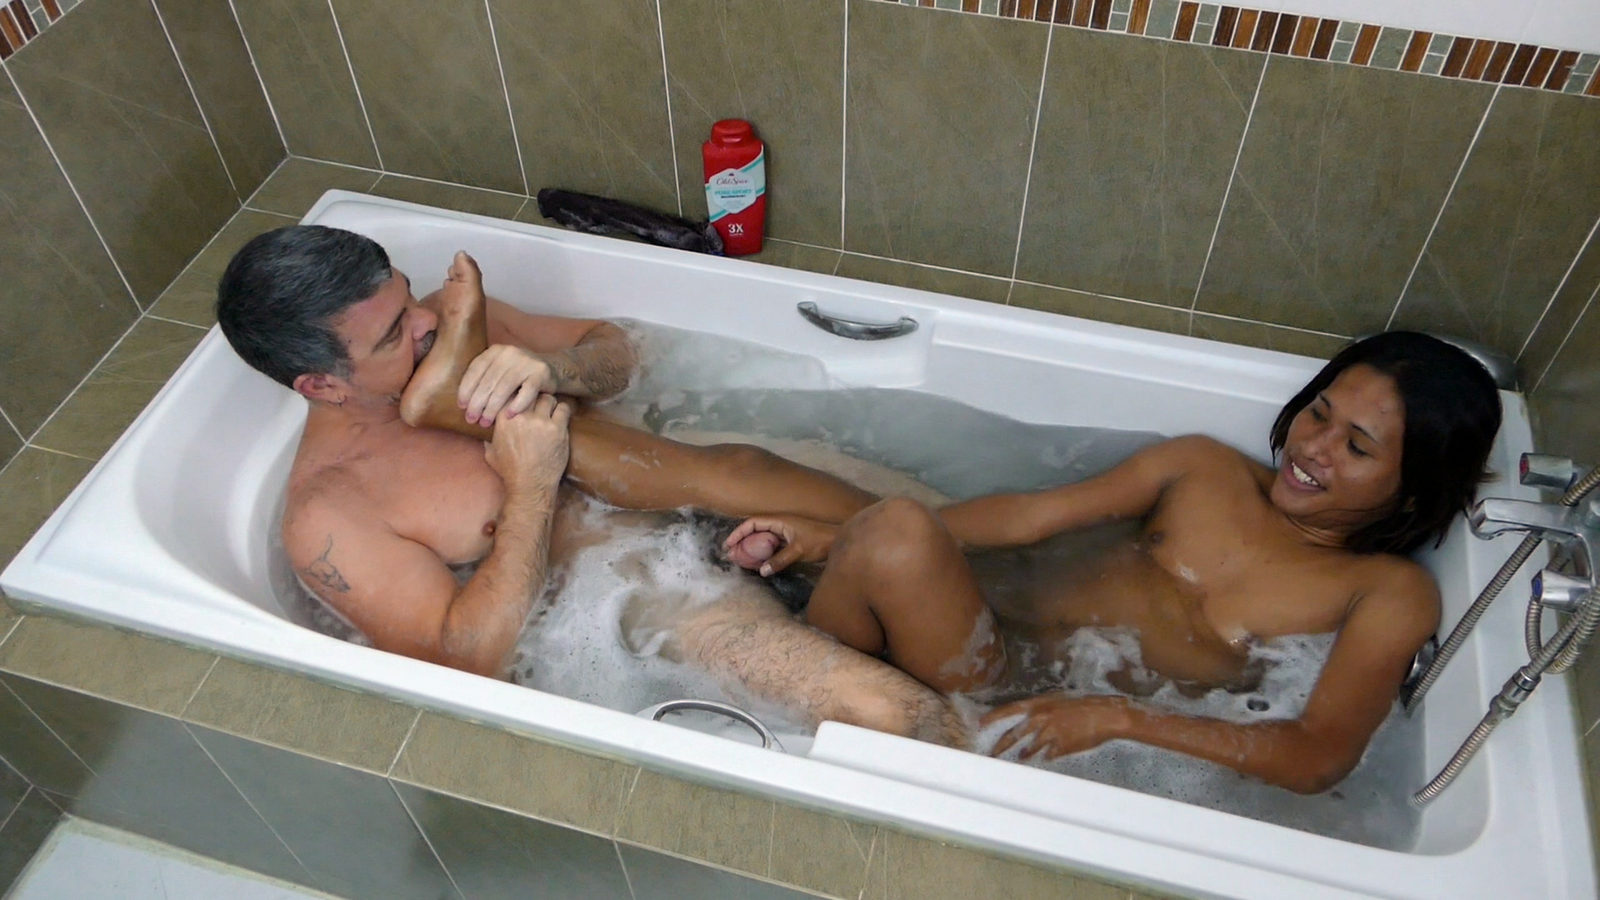 bed-guys-naked-in-a-bathtub-having-sex-pocket-fuck-sleeping